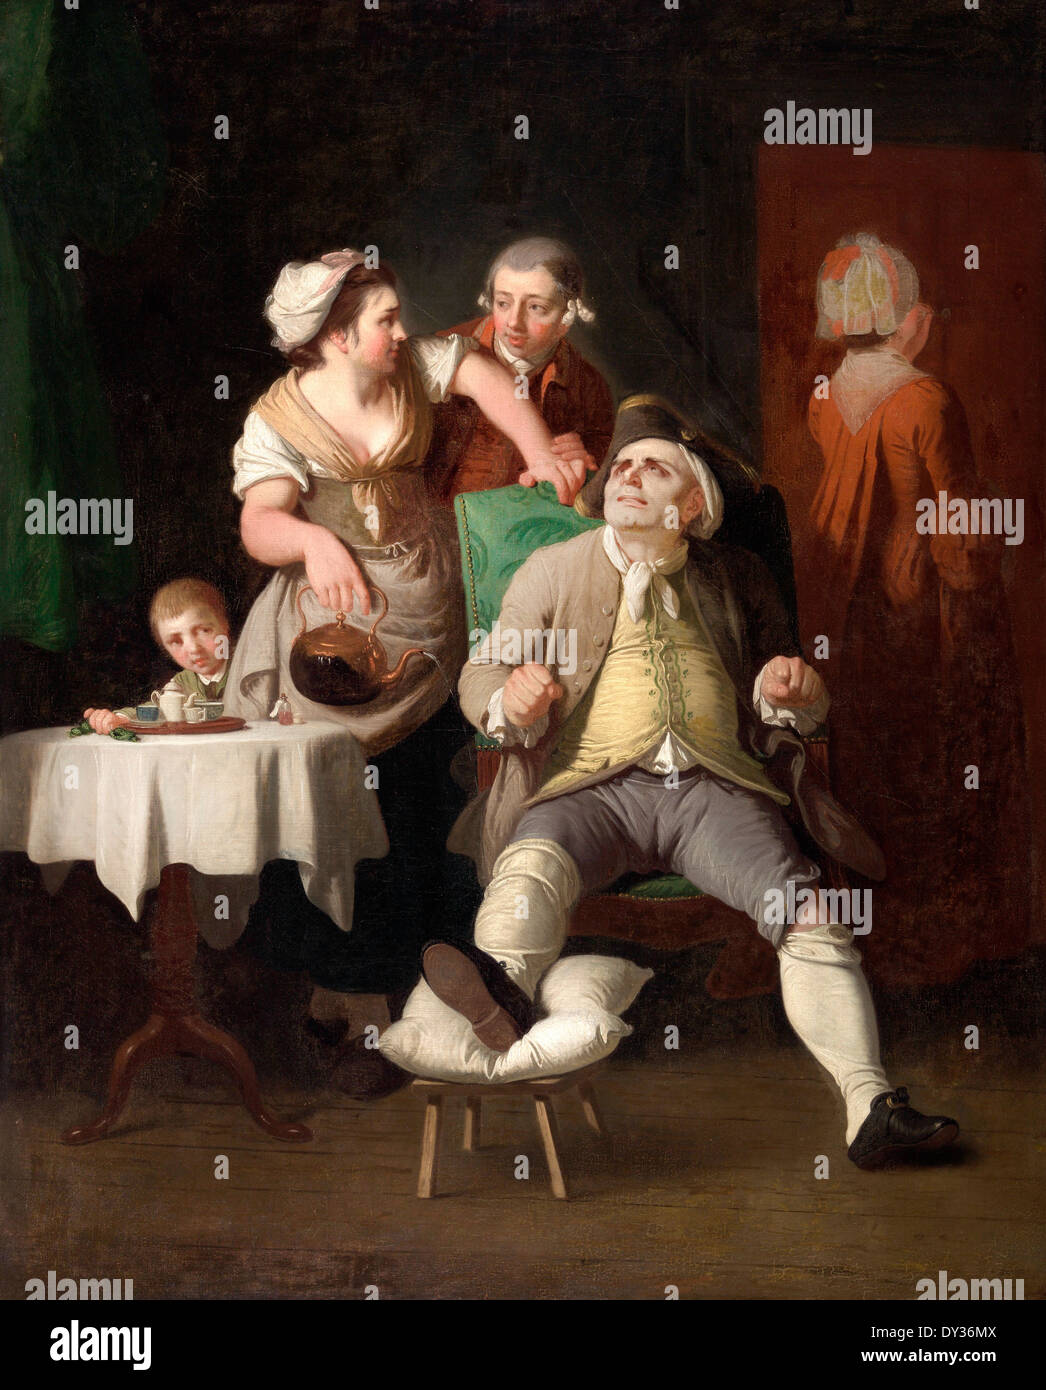 Edward Penny, The Profligate Punished by Neglect 1774 Oil on canvas. Yale Center for British Art, New Haven, USA. - Stock Image